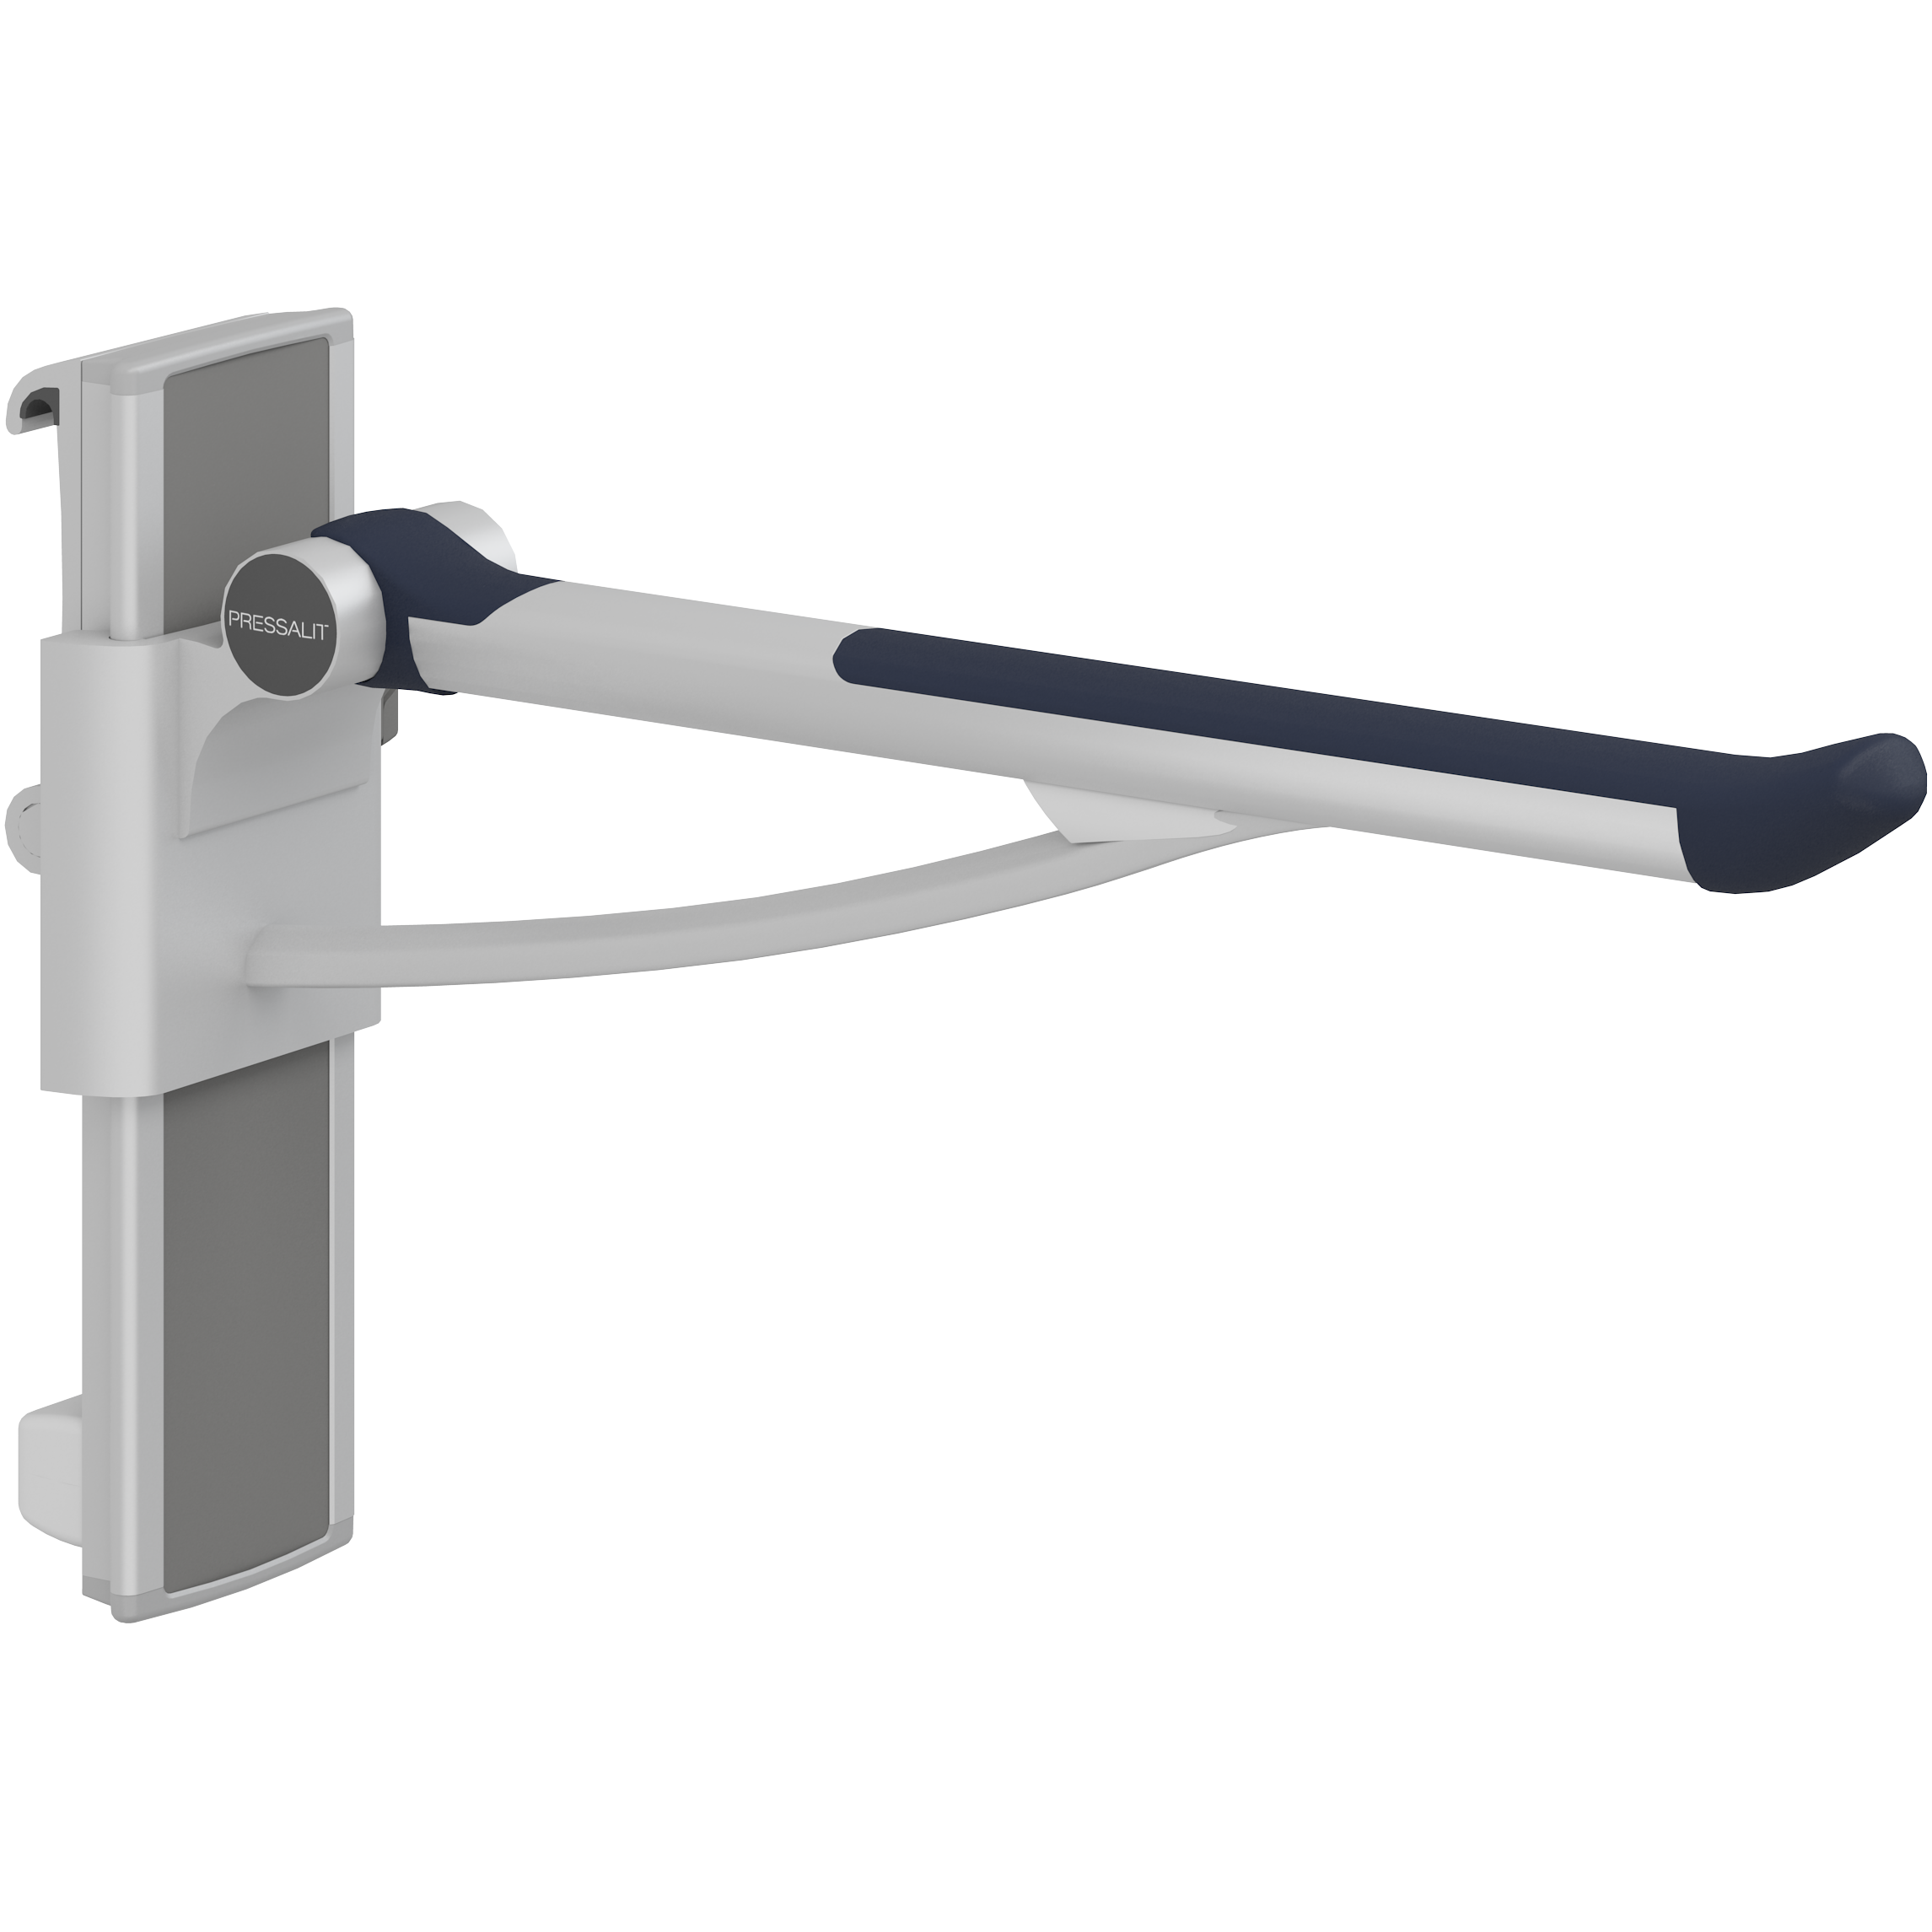 PLUS support arm, 700 mm, right hand operated